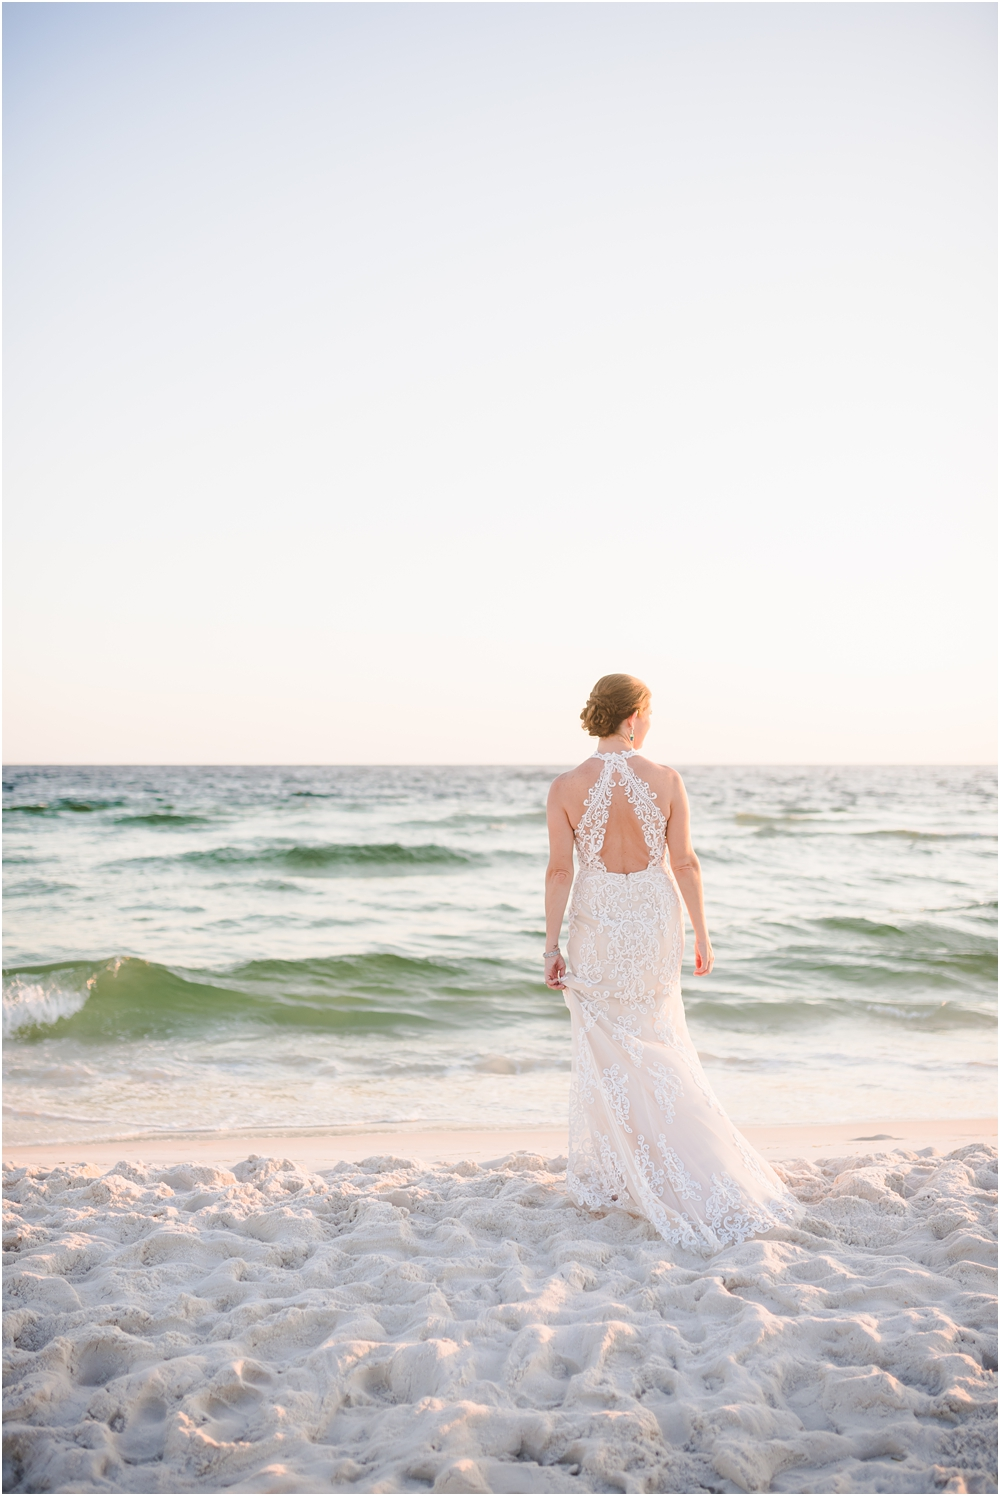 ledman-wedding-kiersten-stevenson-photography-30a-panama-city-beach-dothan-tallahassee-(491-of-763).JPG